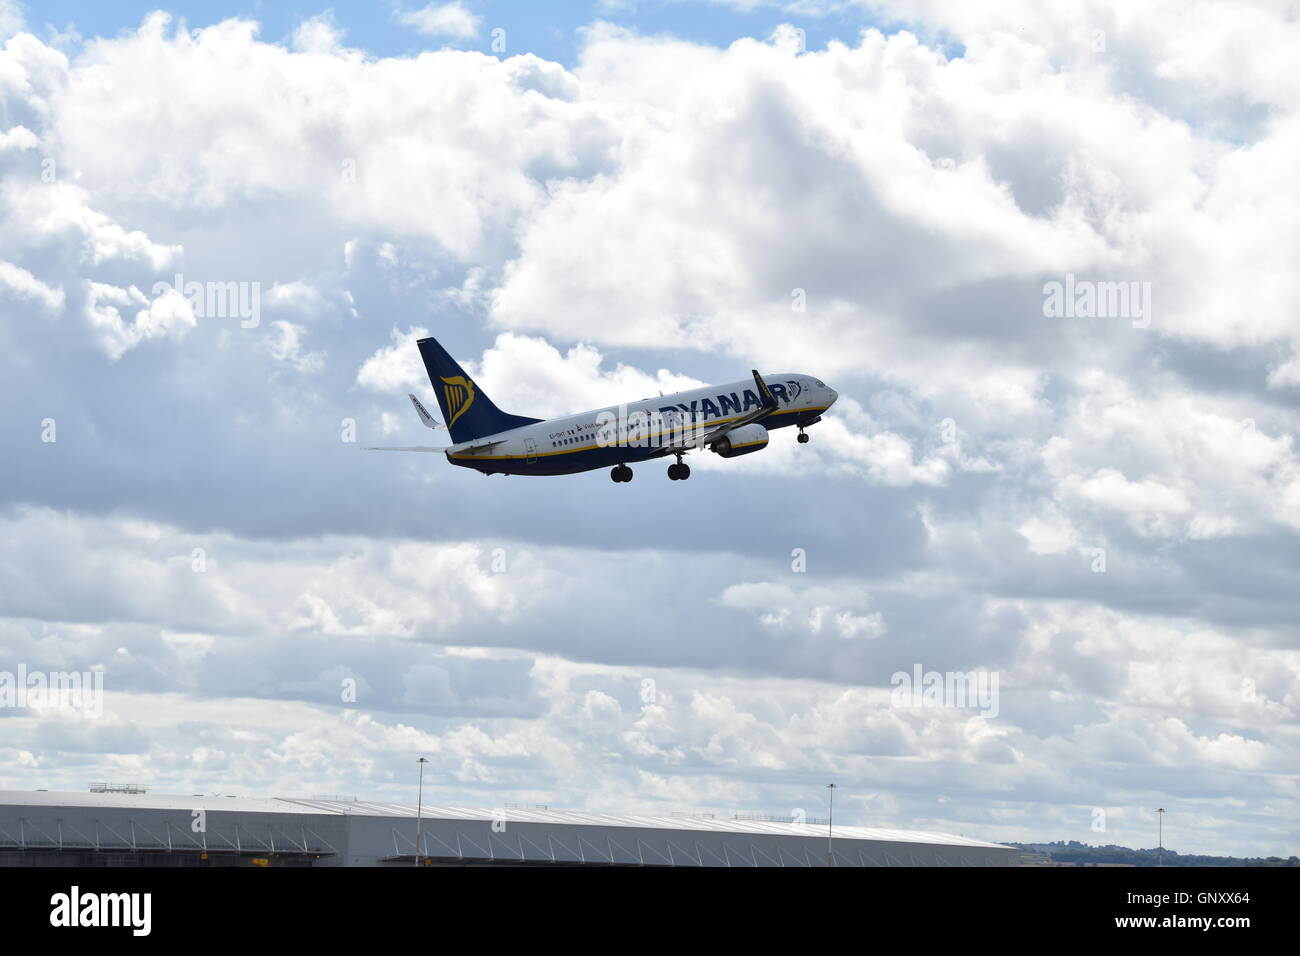 Ryanair taking off from East Midlands airport - Stock Image